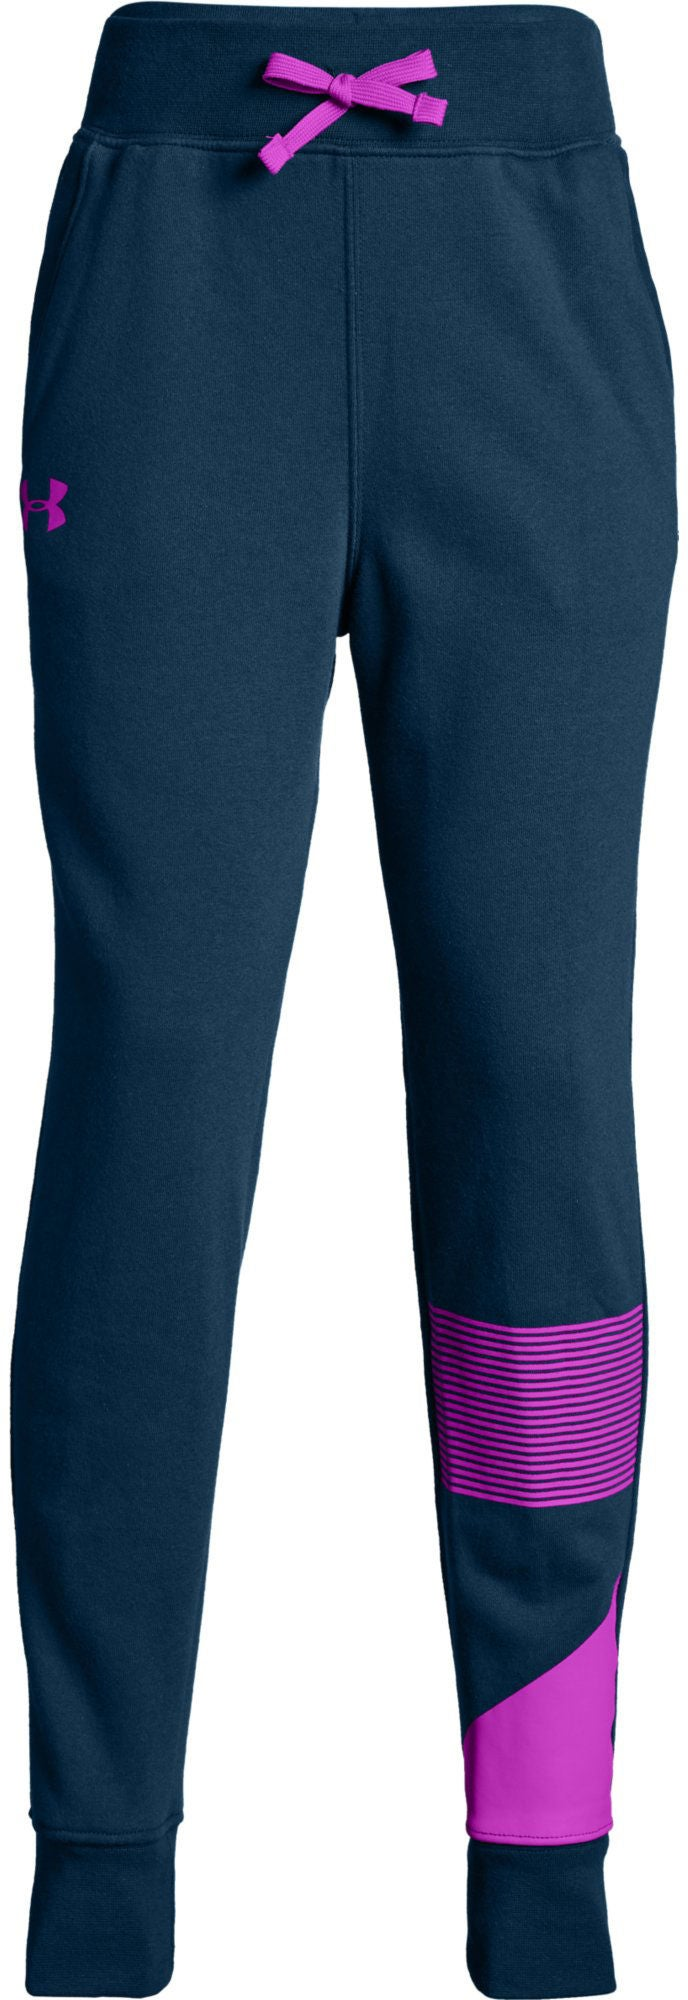 Under Armour Rival Jogger Byxor, Techno Teal L